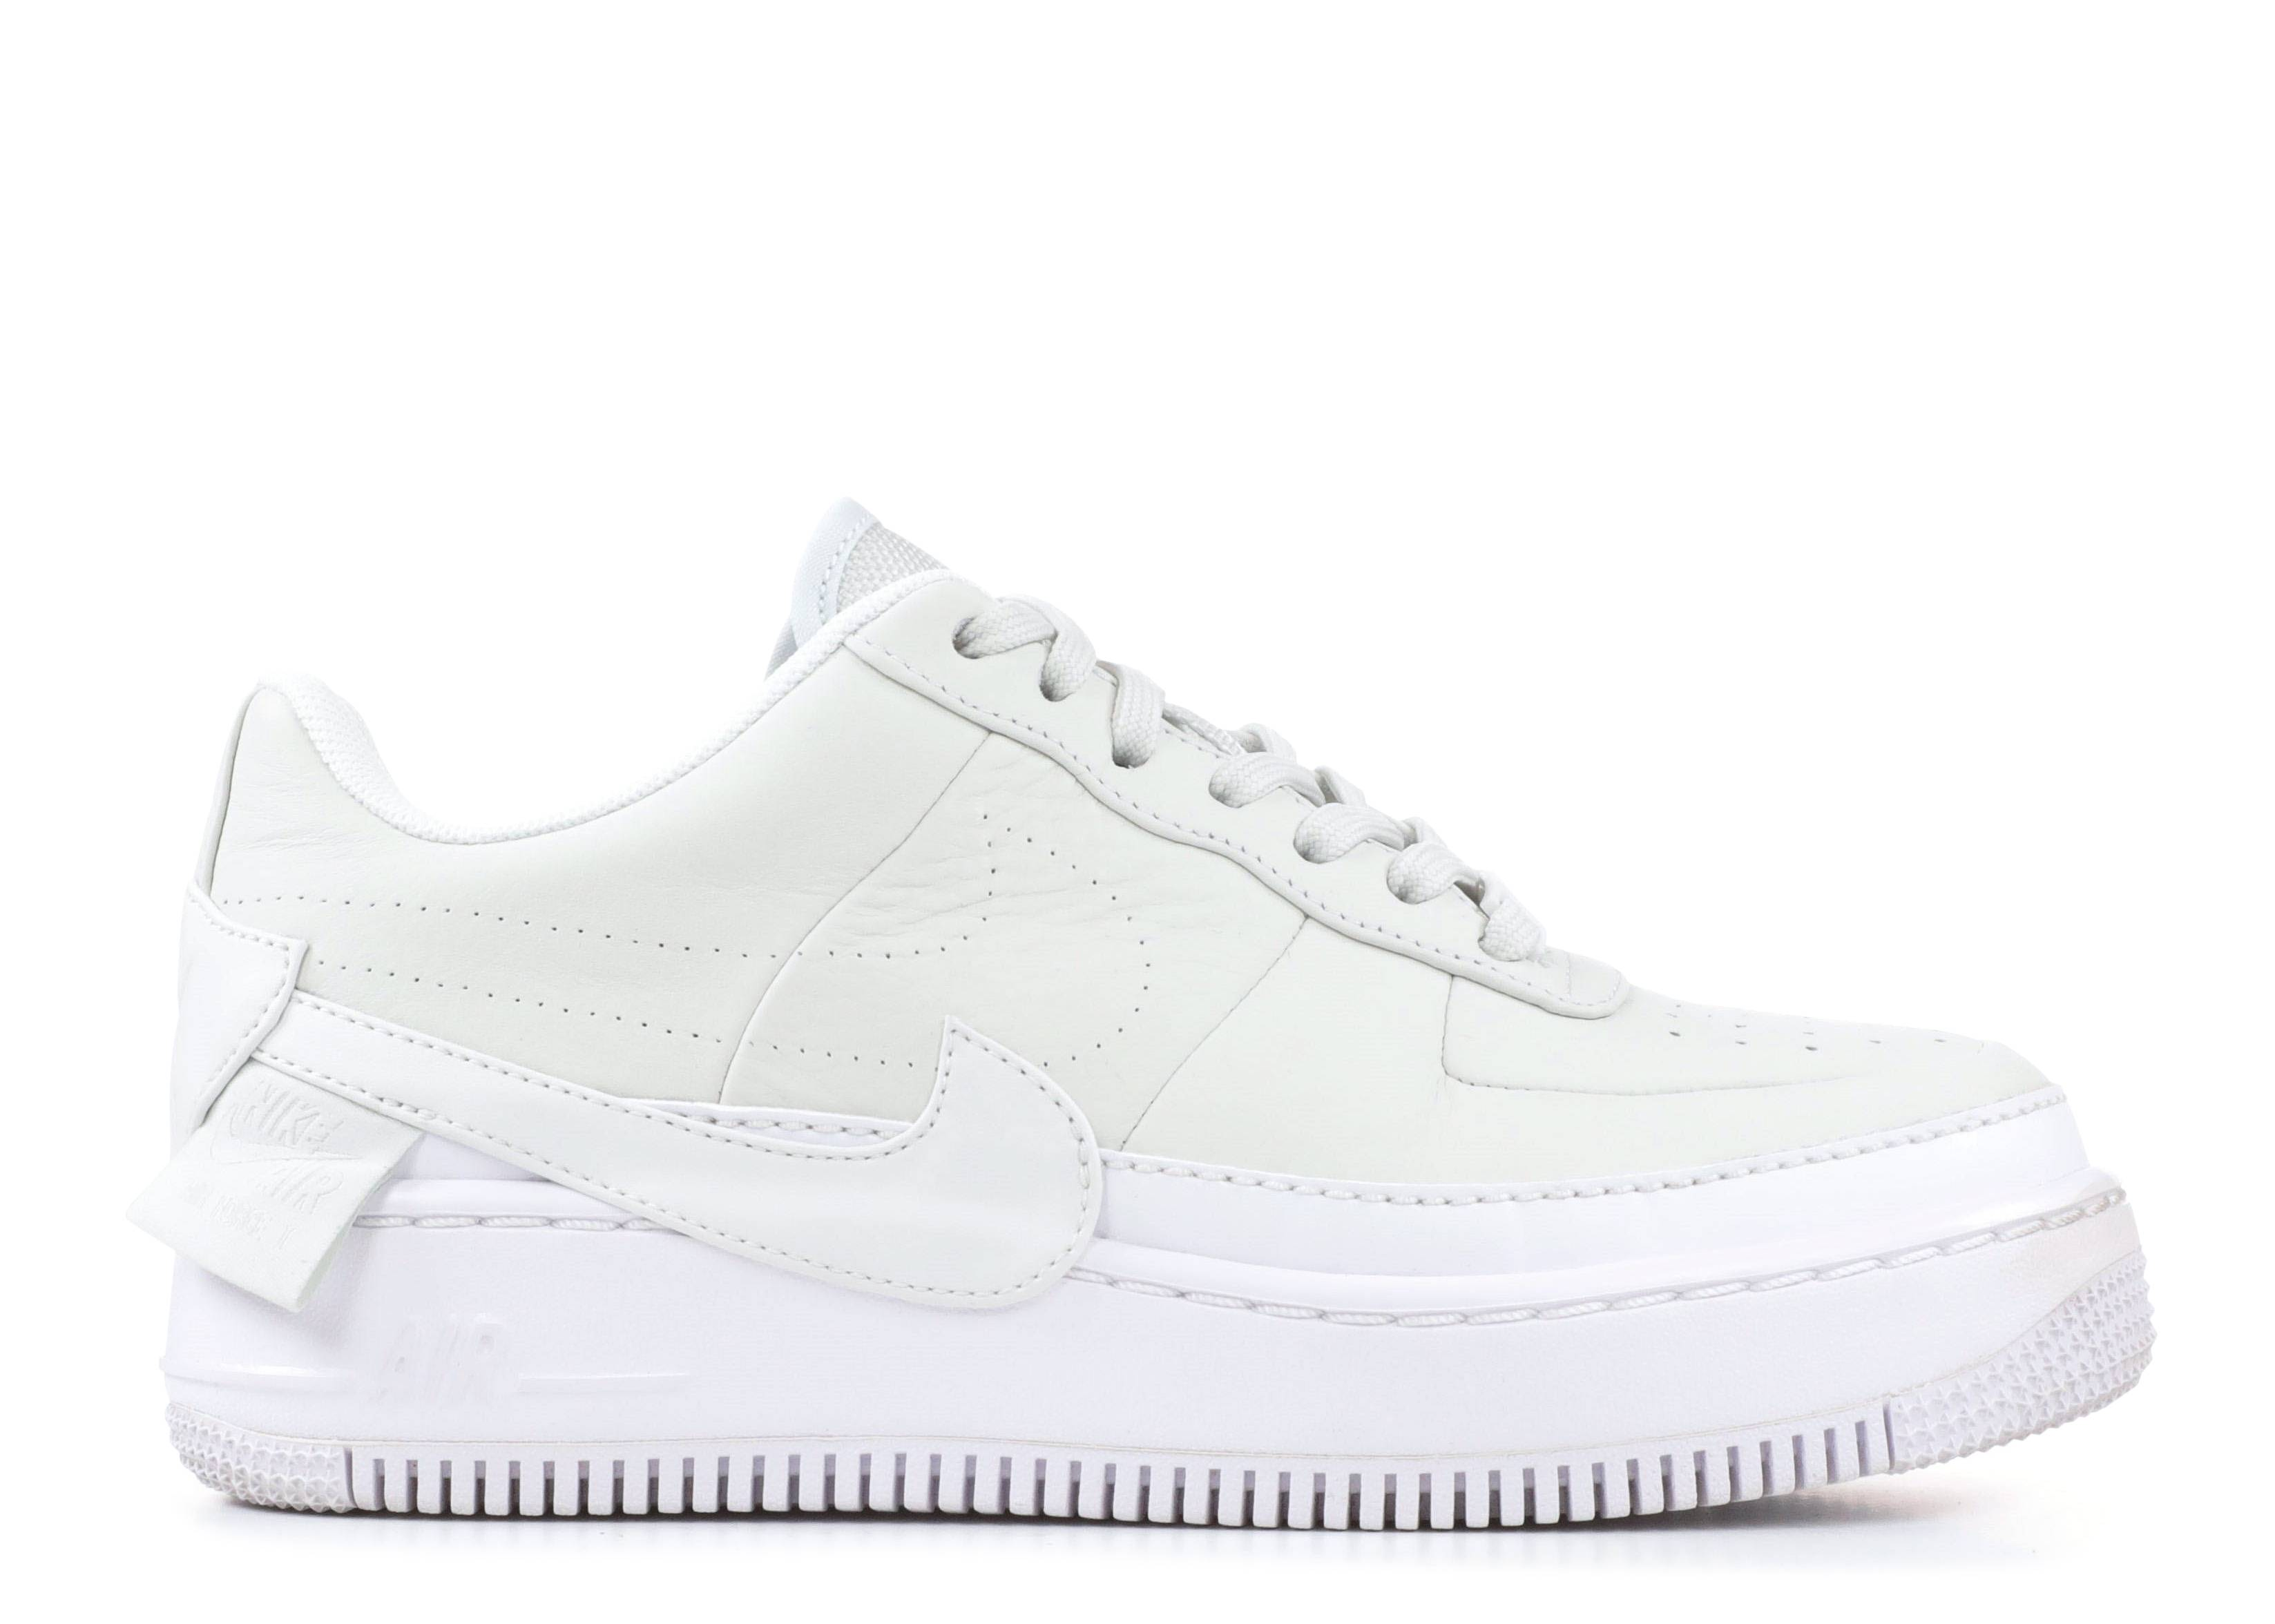 competitive price 24cdc 59a95 W Af1 Jester Xx - Nike - ao1220 100 - off white off white   Flight Club